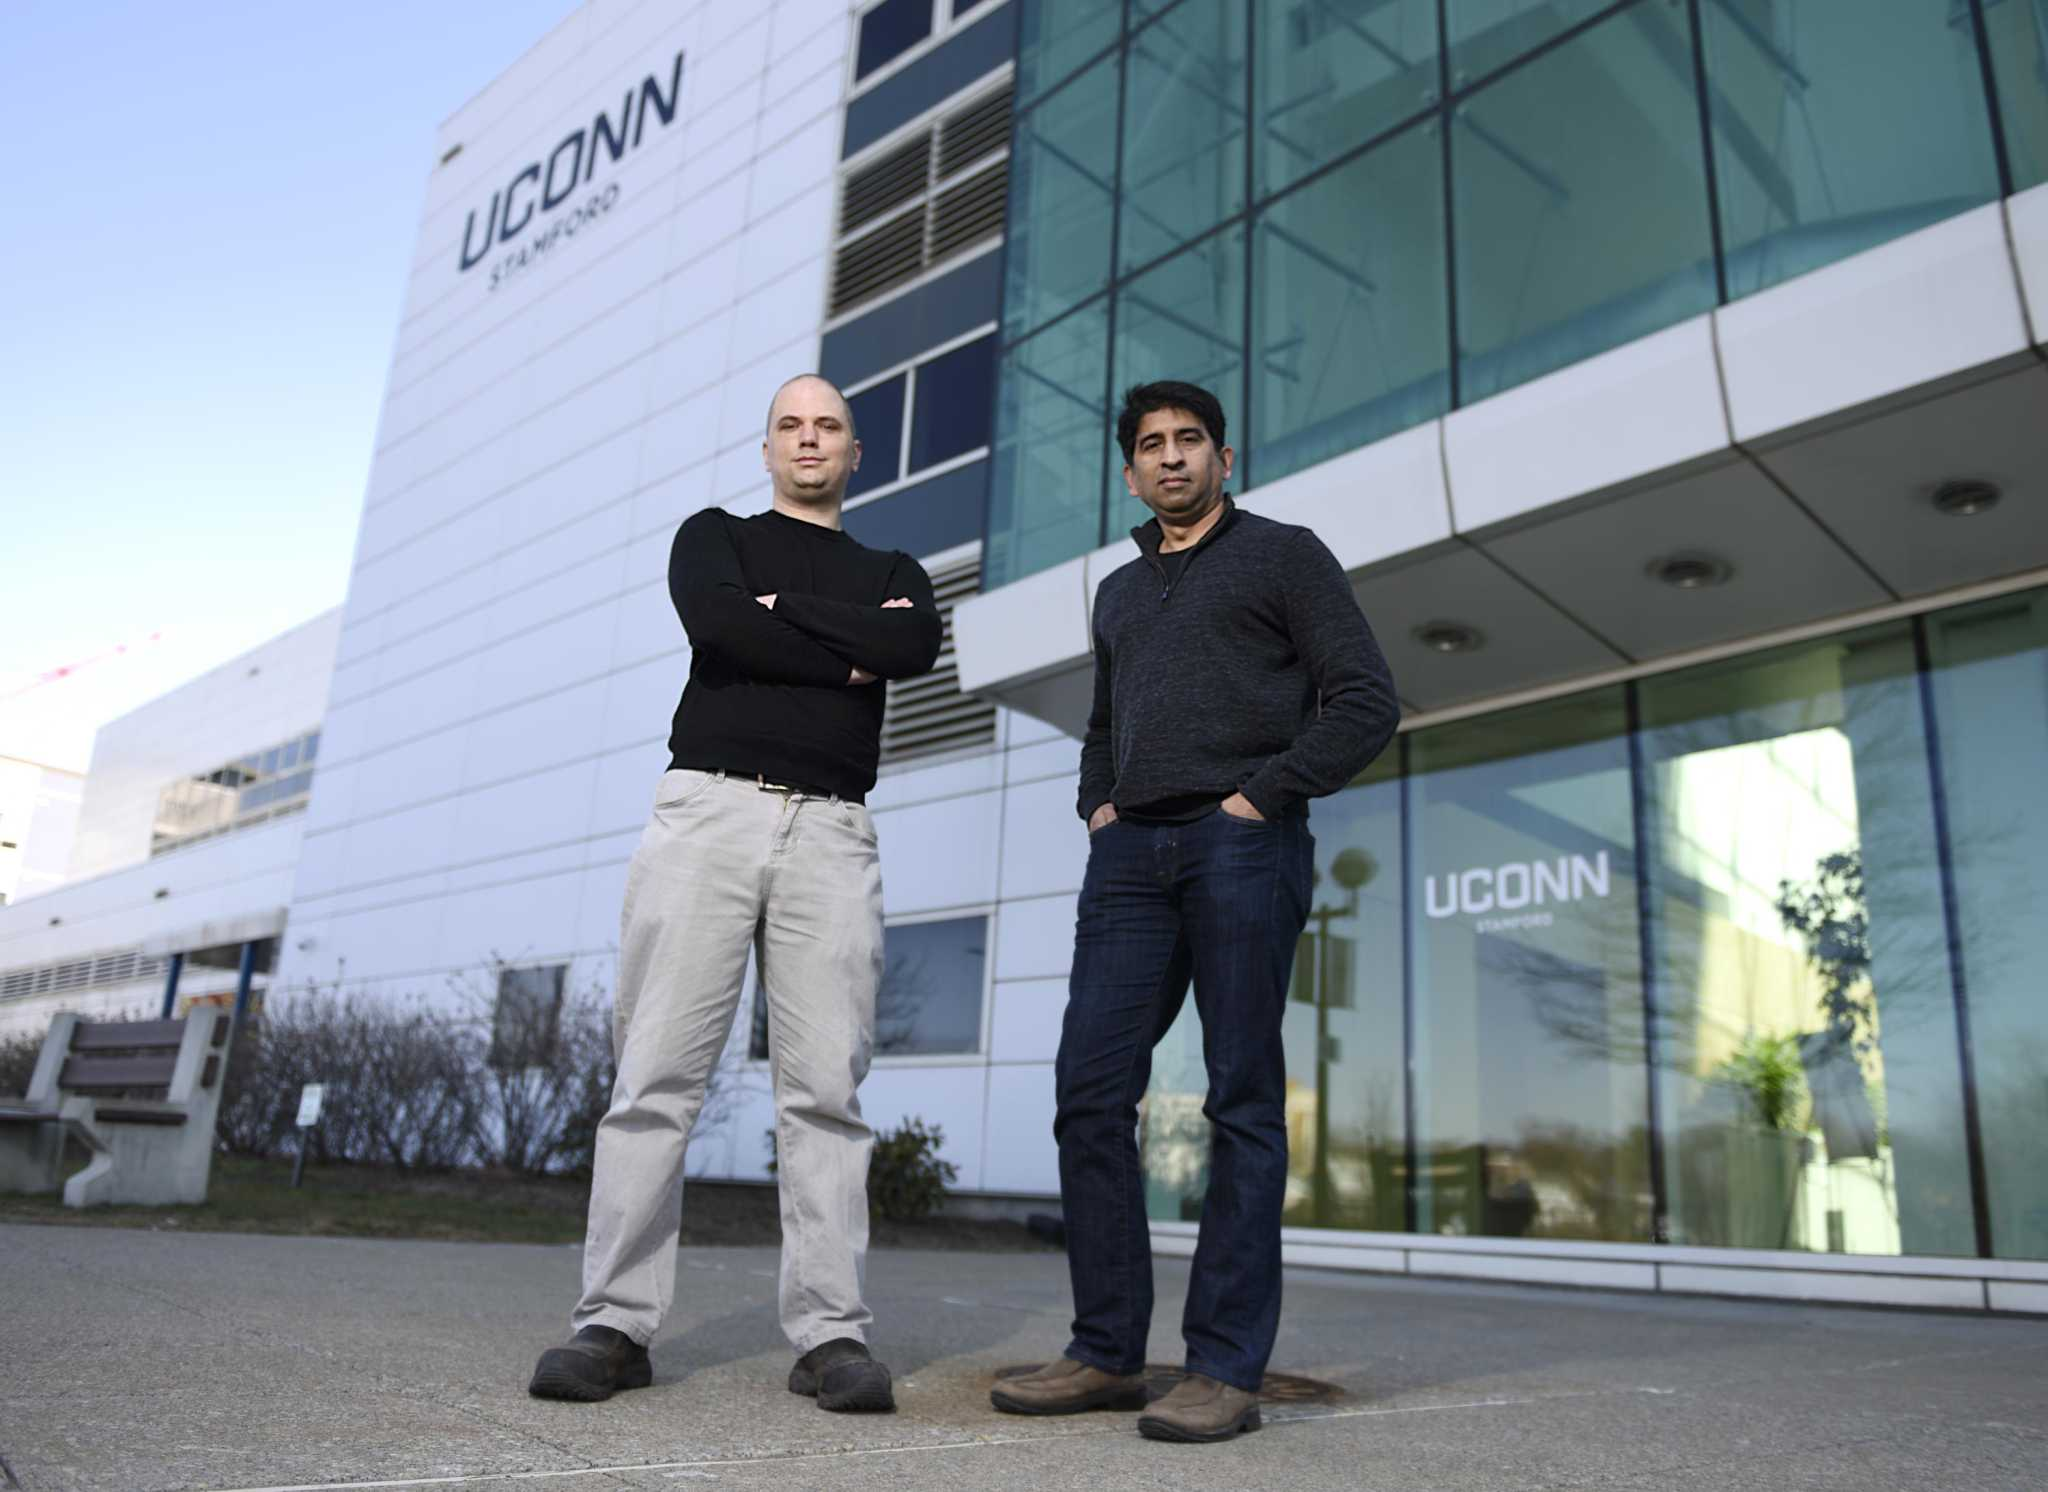 Photo of 'A very nurturing environment': UConn aims to fuel economic growth with Stamford startup incubator